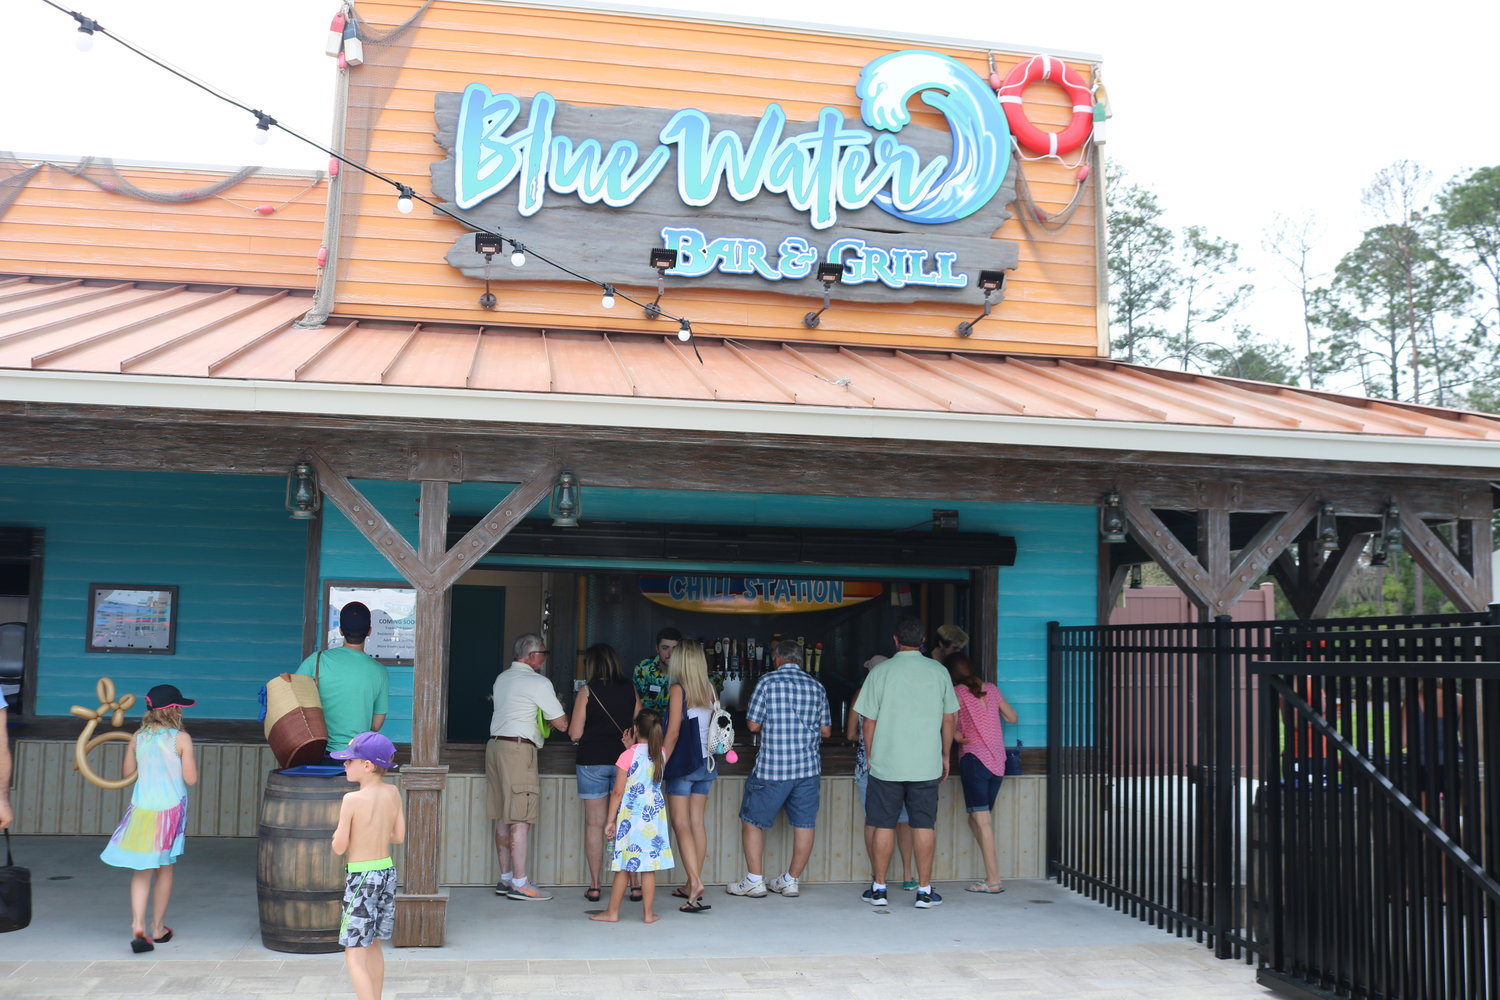 Blue Water Bar & Grill serves both food and drinks at the Spray Water Park.